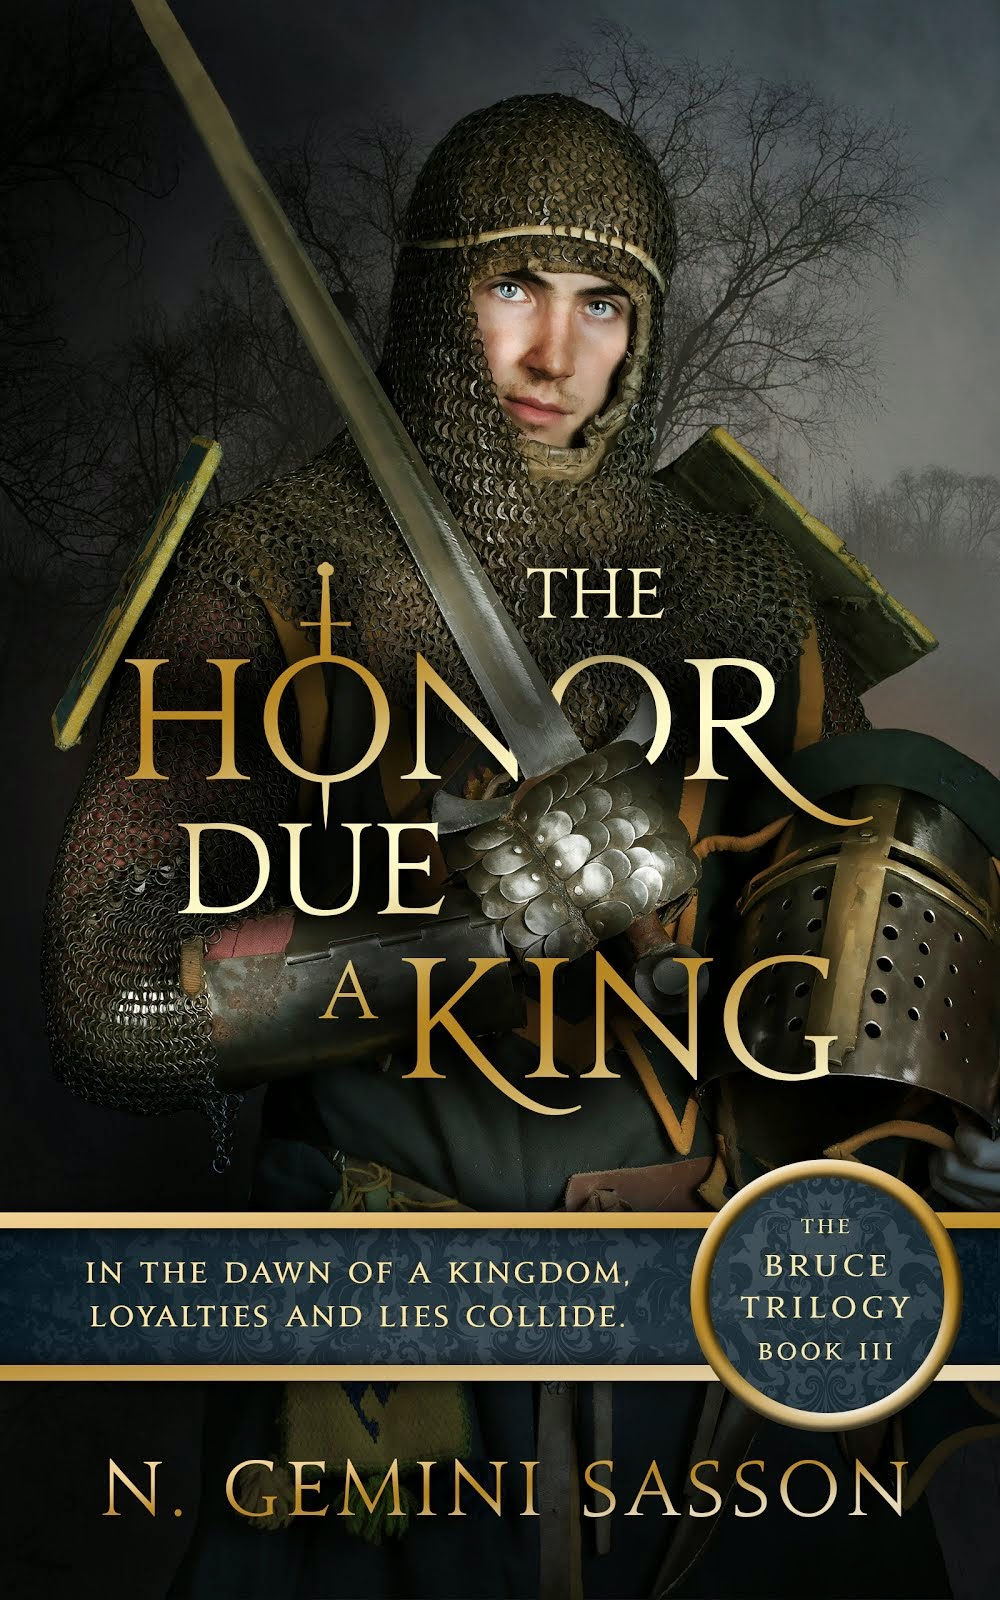 The Honor Due a King (The Bruce Trilogy: Book III)